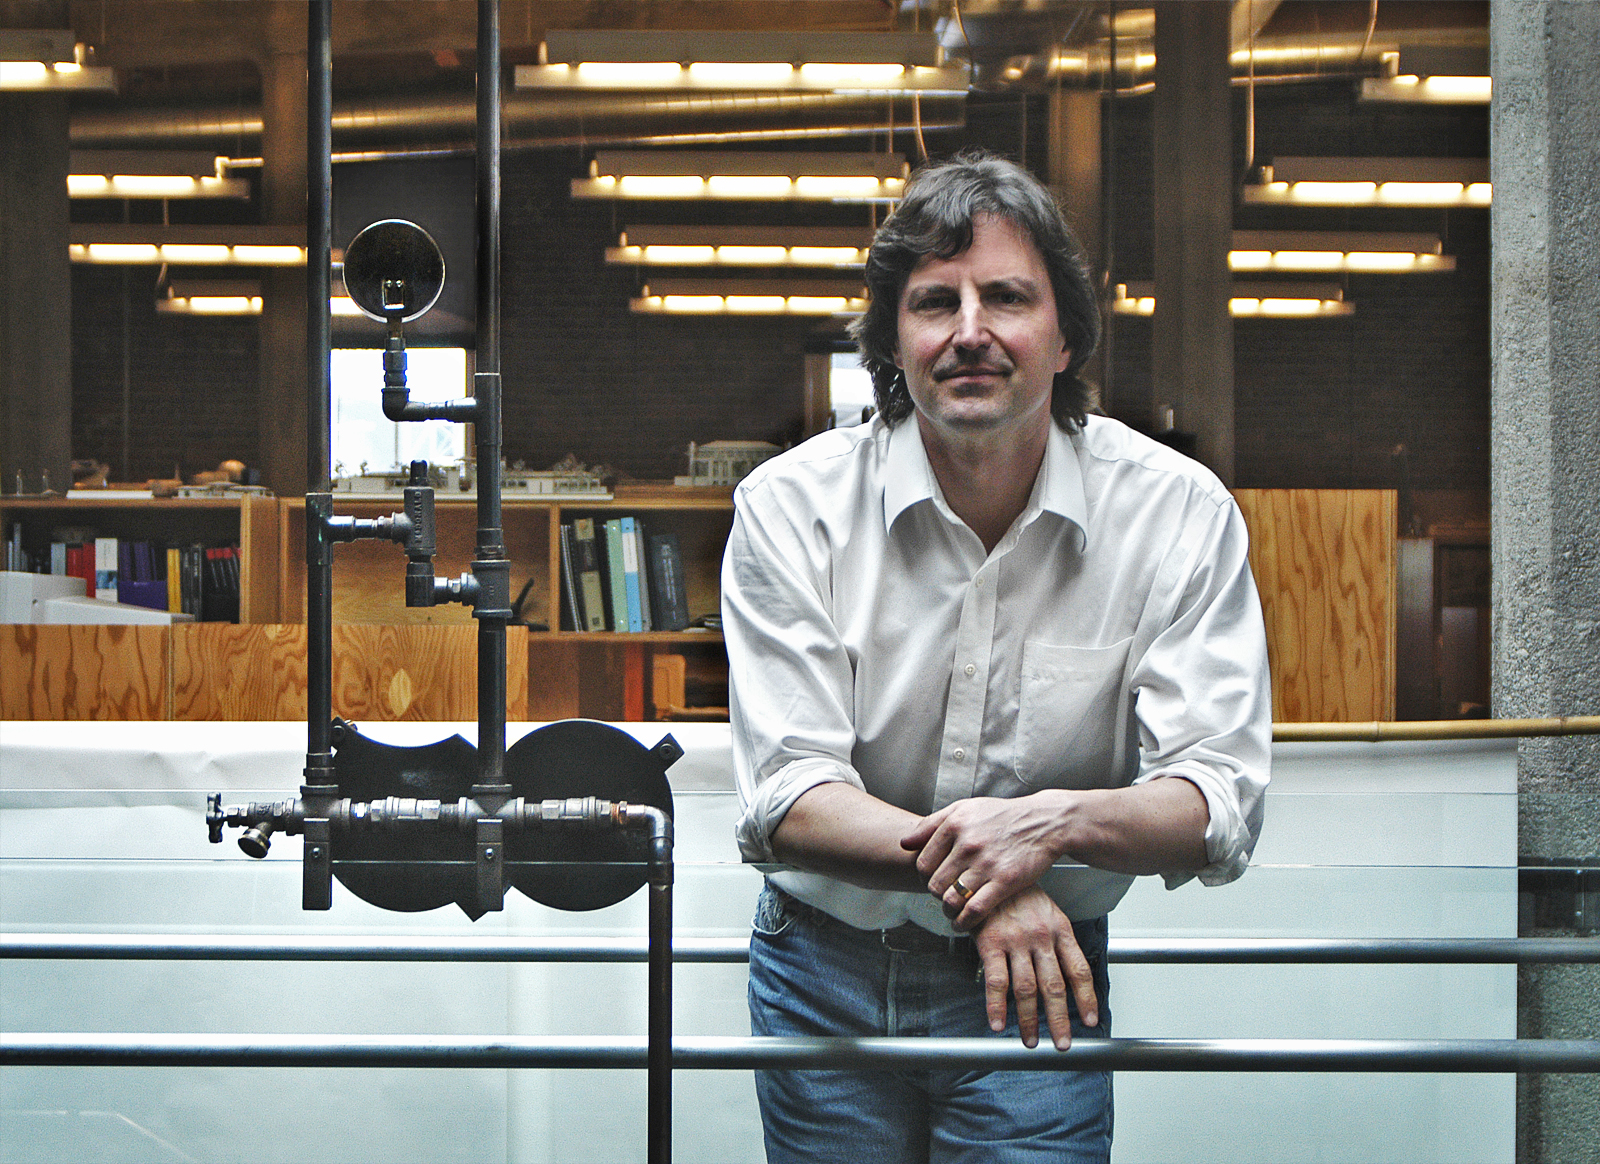 Recognized for his seamless integration of architecture and landscape, Kundig's projects are unique in their meticulous attention to detail and in the materials used, which are often left in their natural, raw state. His igenuity is evident in the experie